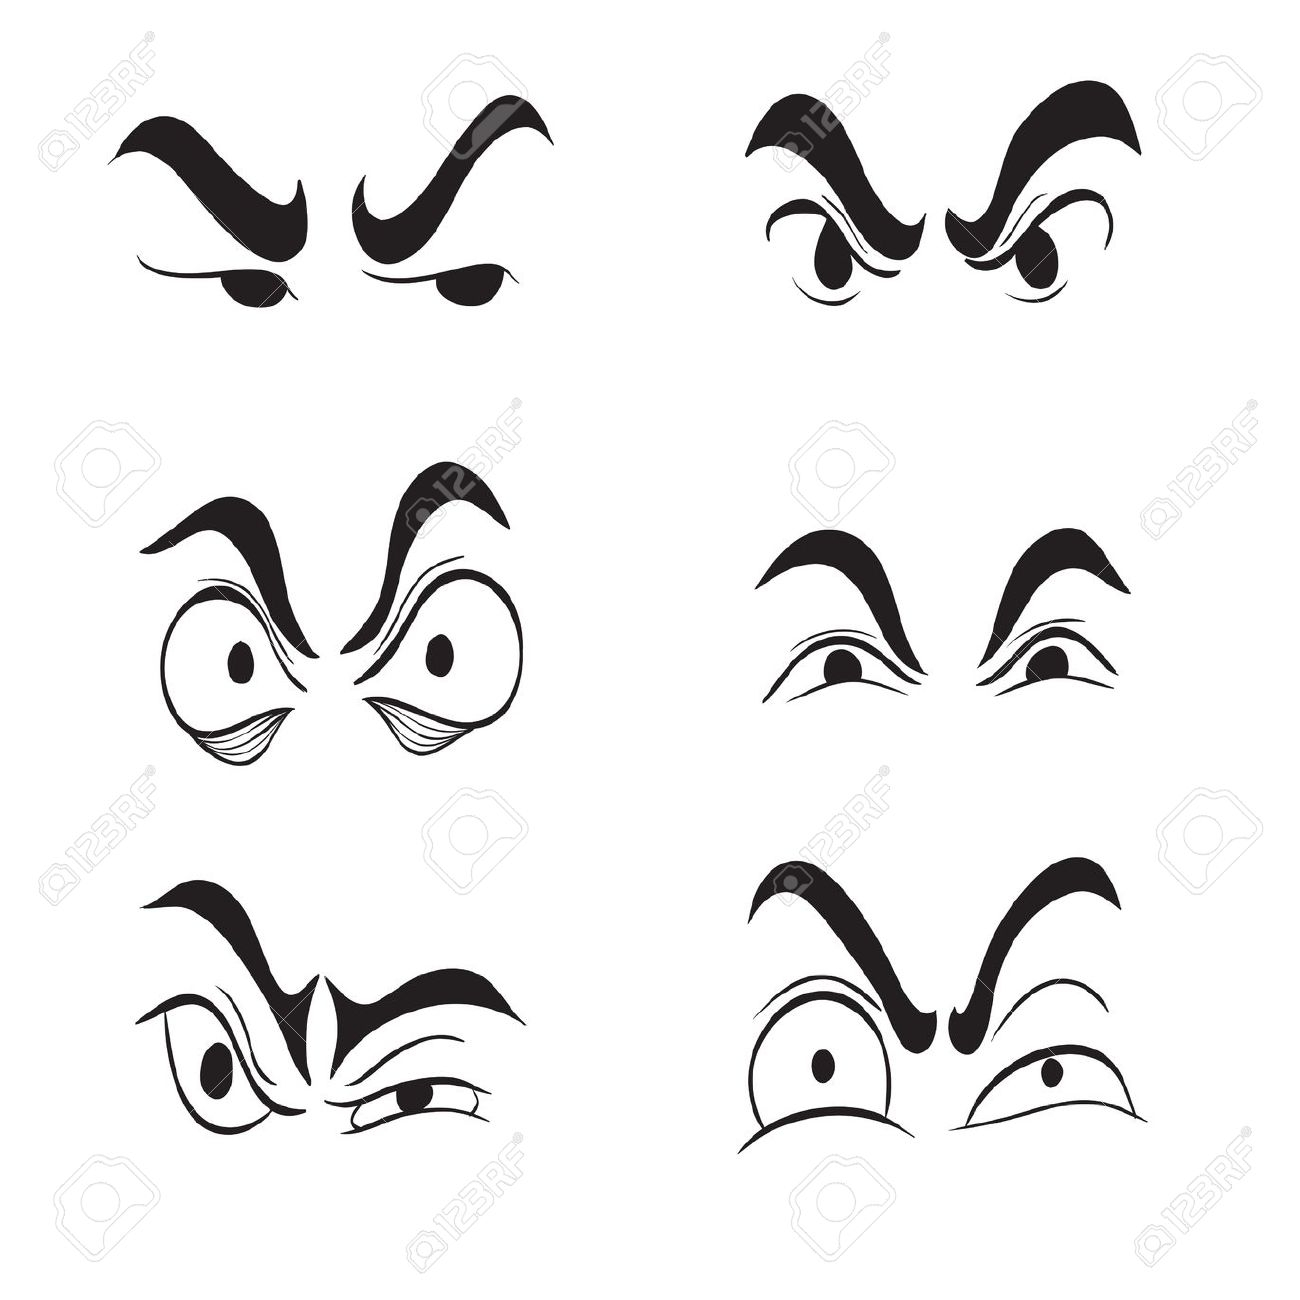 Angy Eyes Clipart 20 Free Cliparts